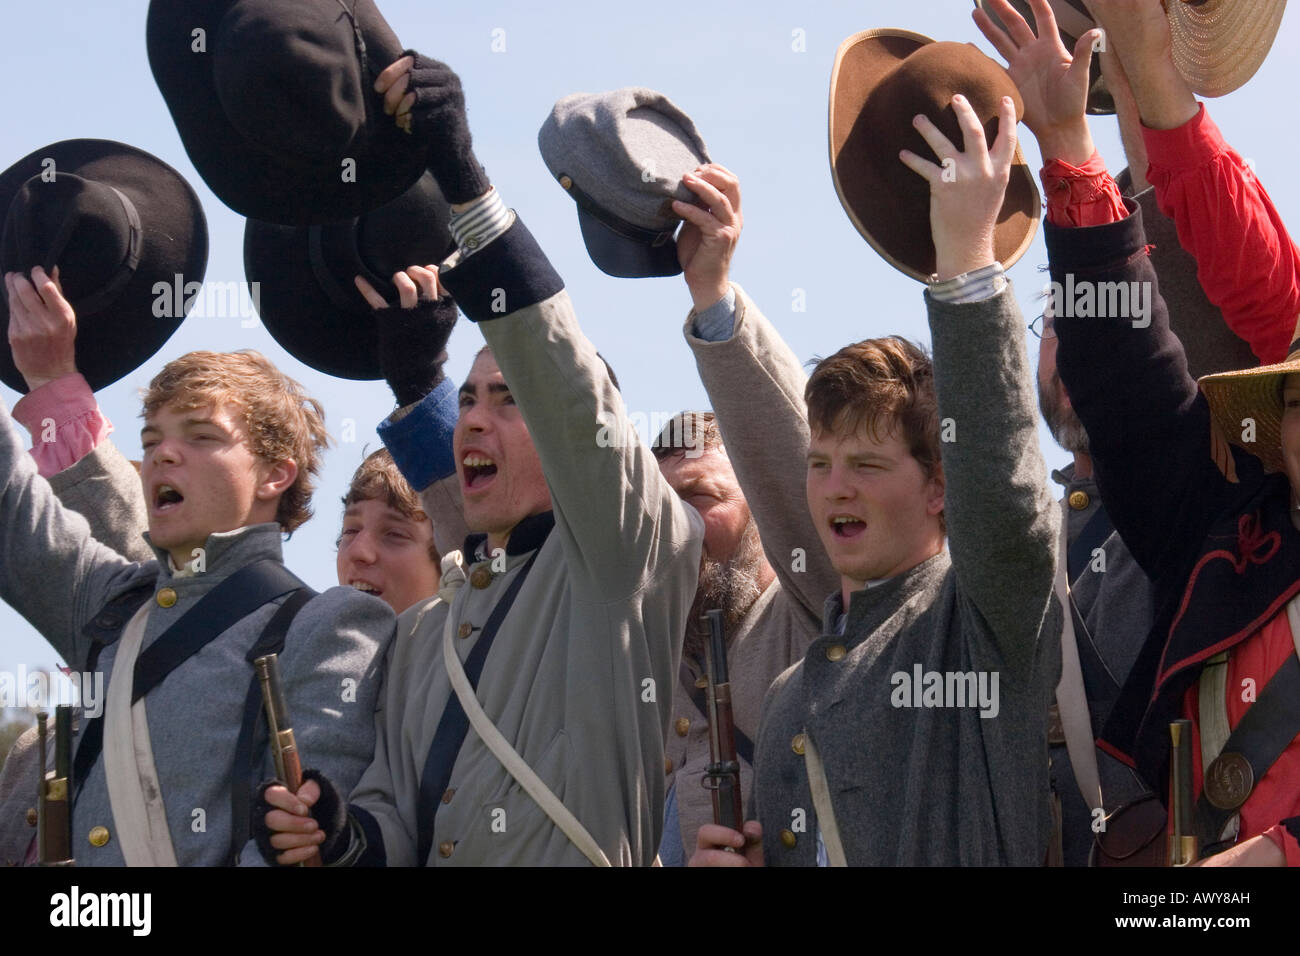 Teenagers dressed in authentic uniforms of young recruits from the Confederate Army in the American Civil War - Stock Image